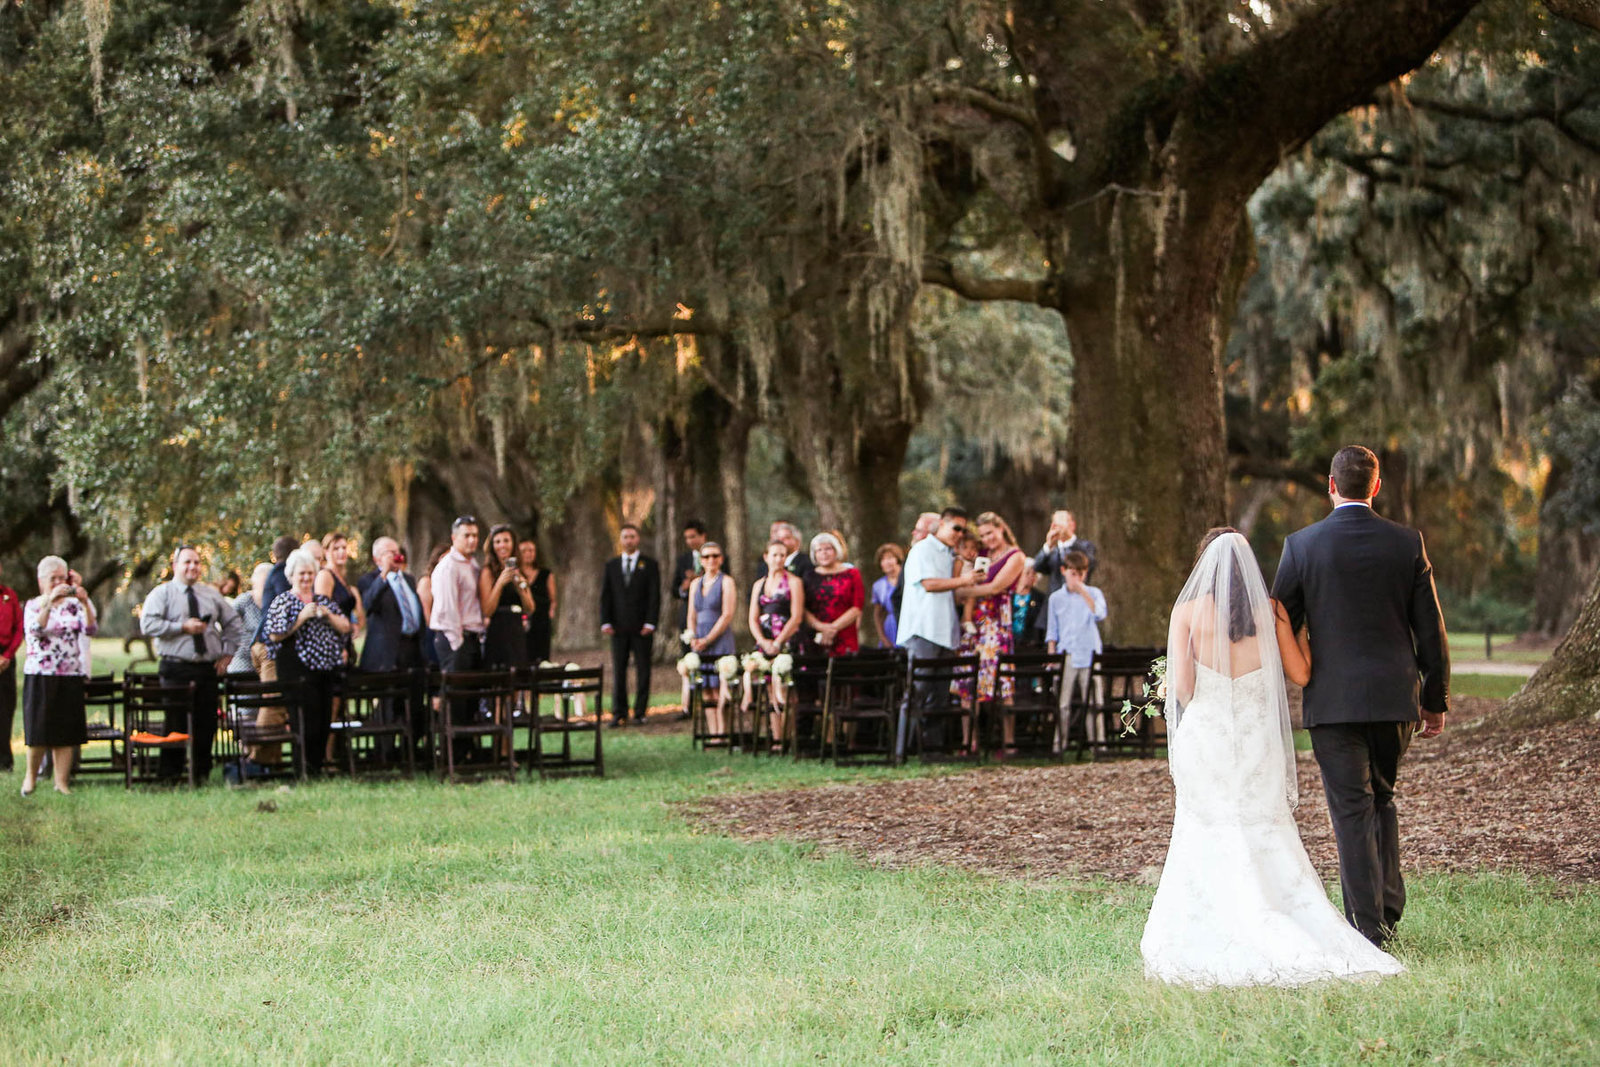 Brother walks bride down the aisle, Boone Hall Plantation, Charleston, South Carolina. Kate Timbers Photography.